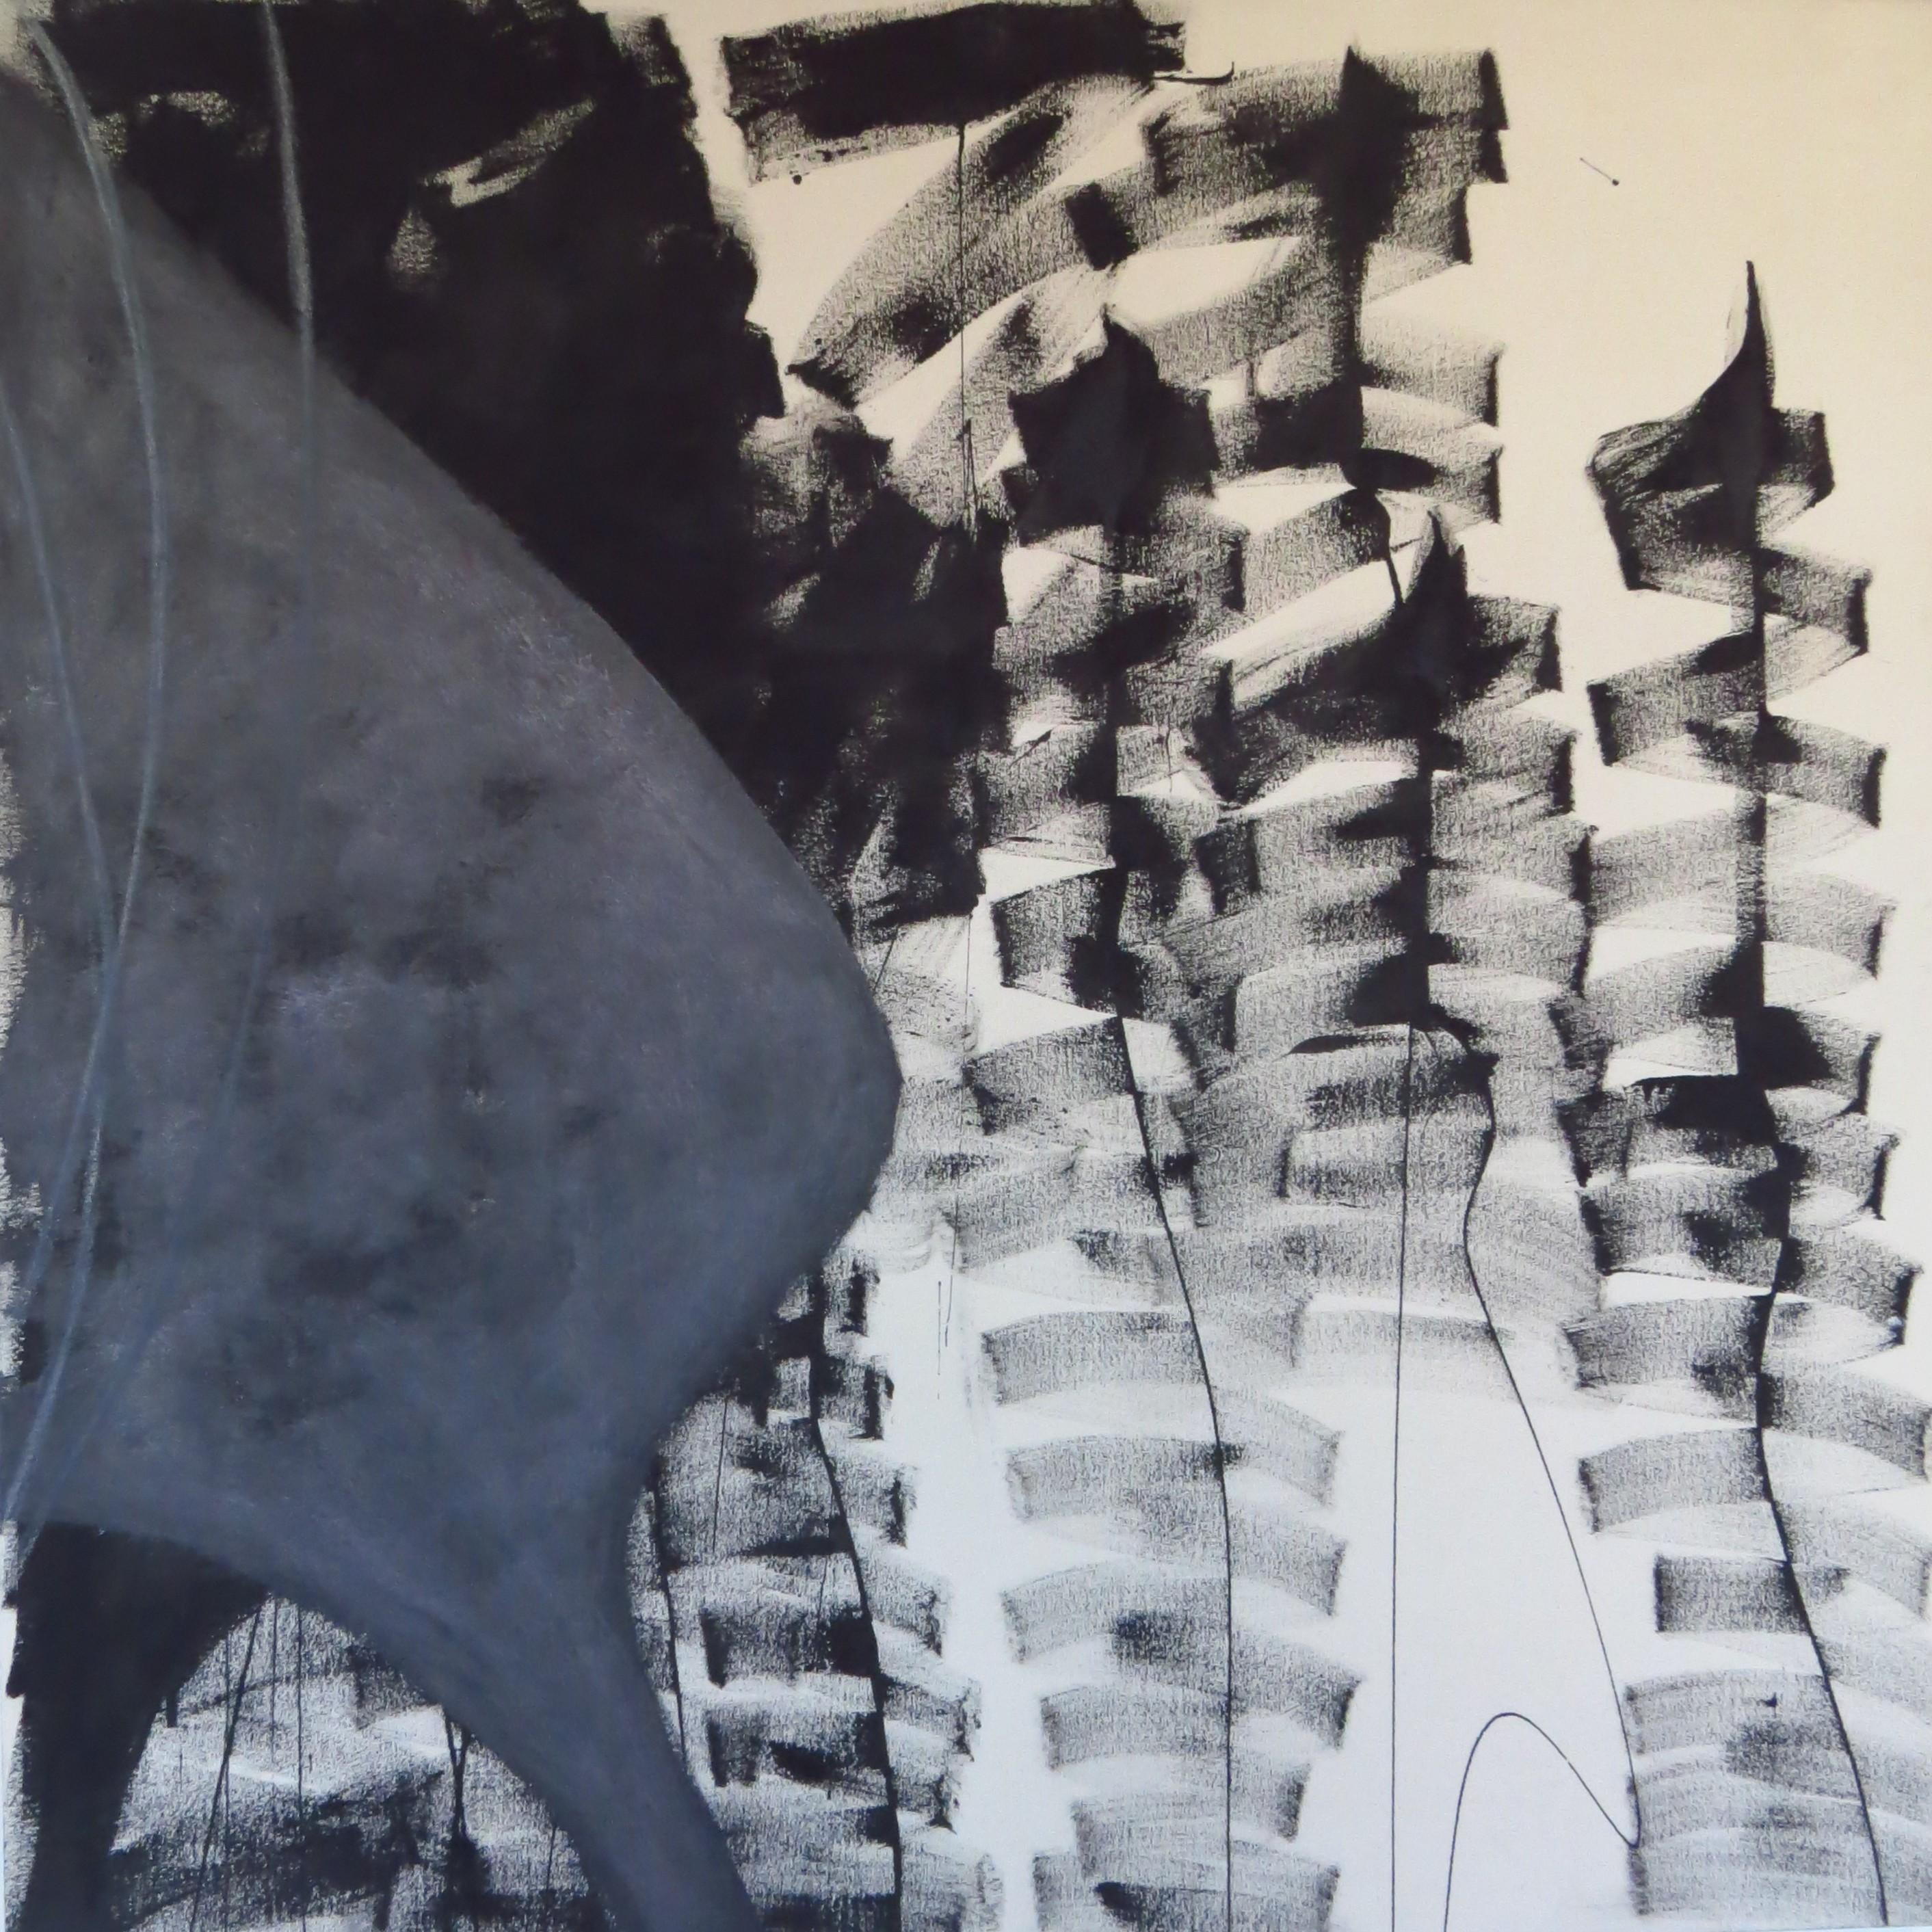 monochromatic, abstract, textured, painting